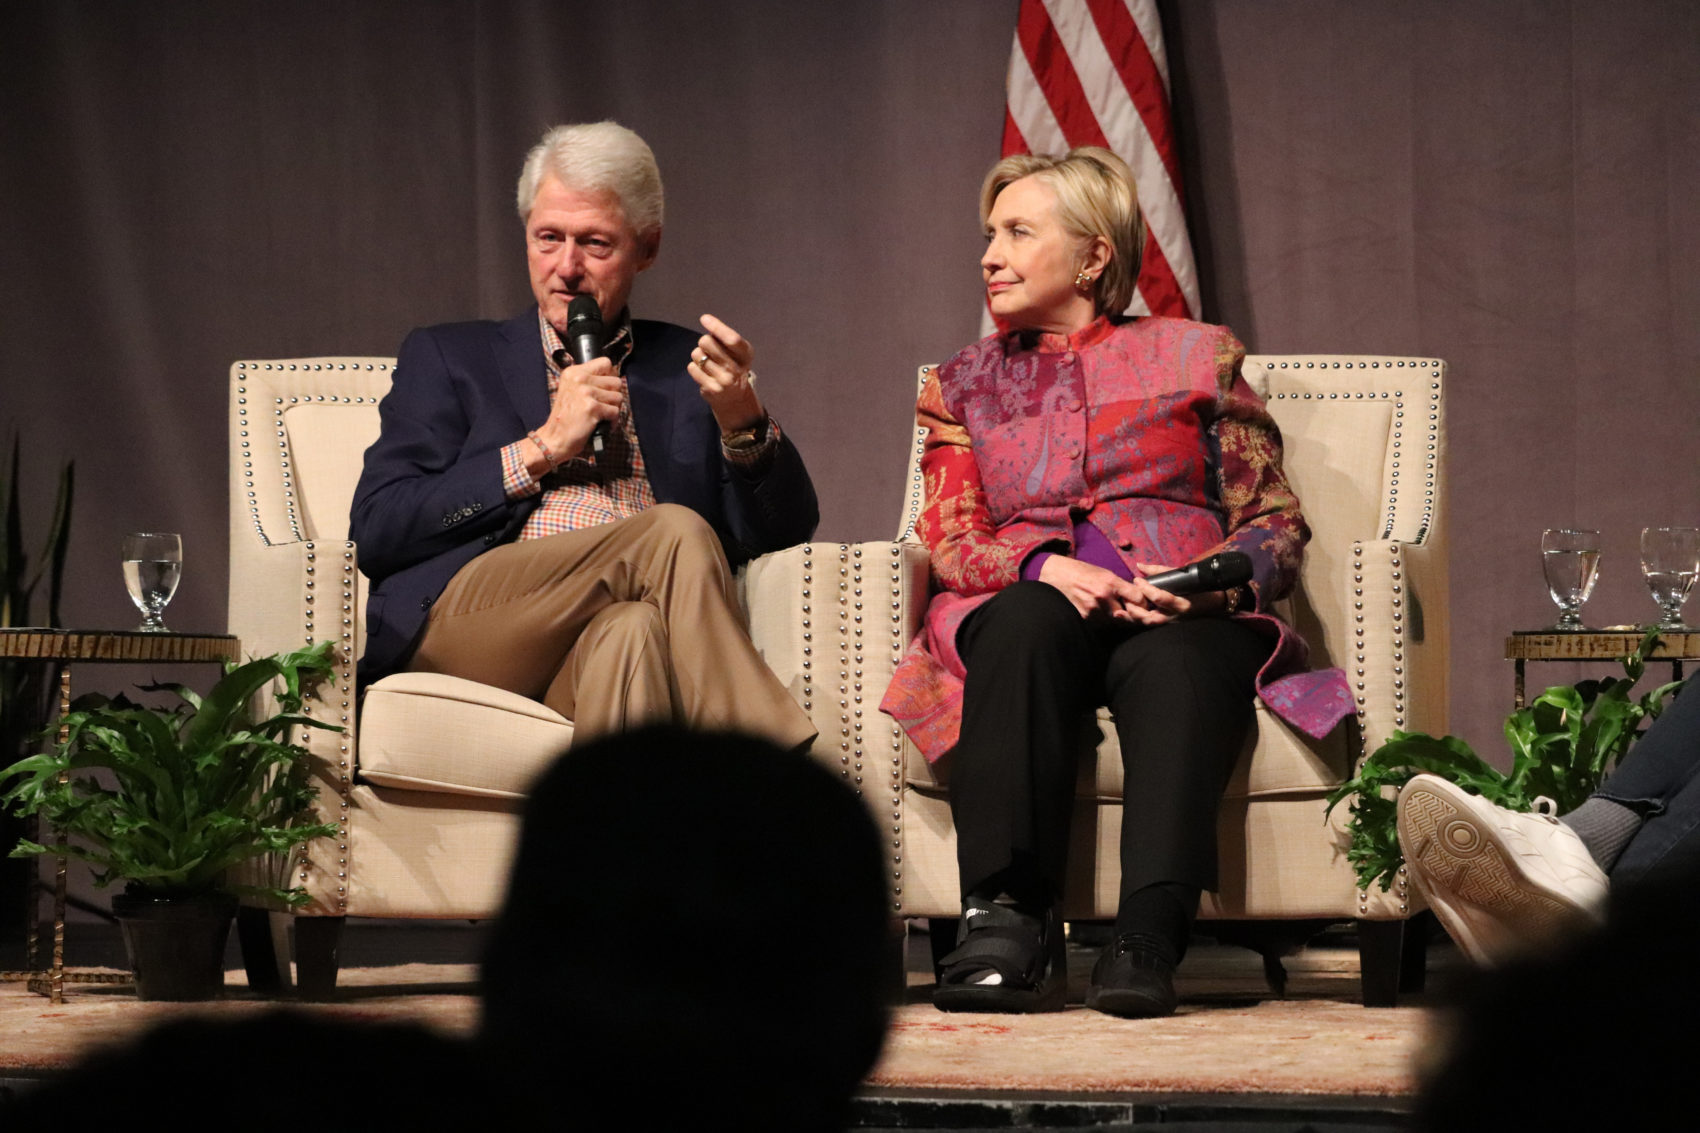 Clintons To Visit Boston Next Year As Part Of Nationwide Tour